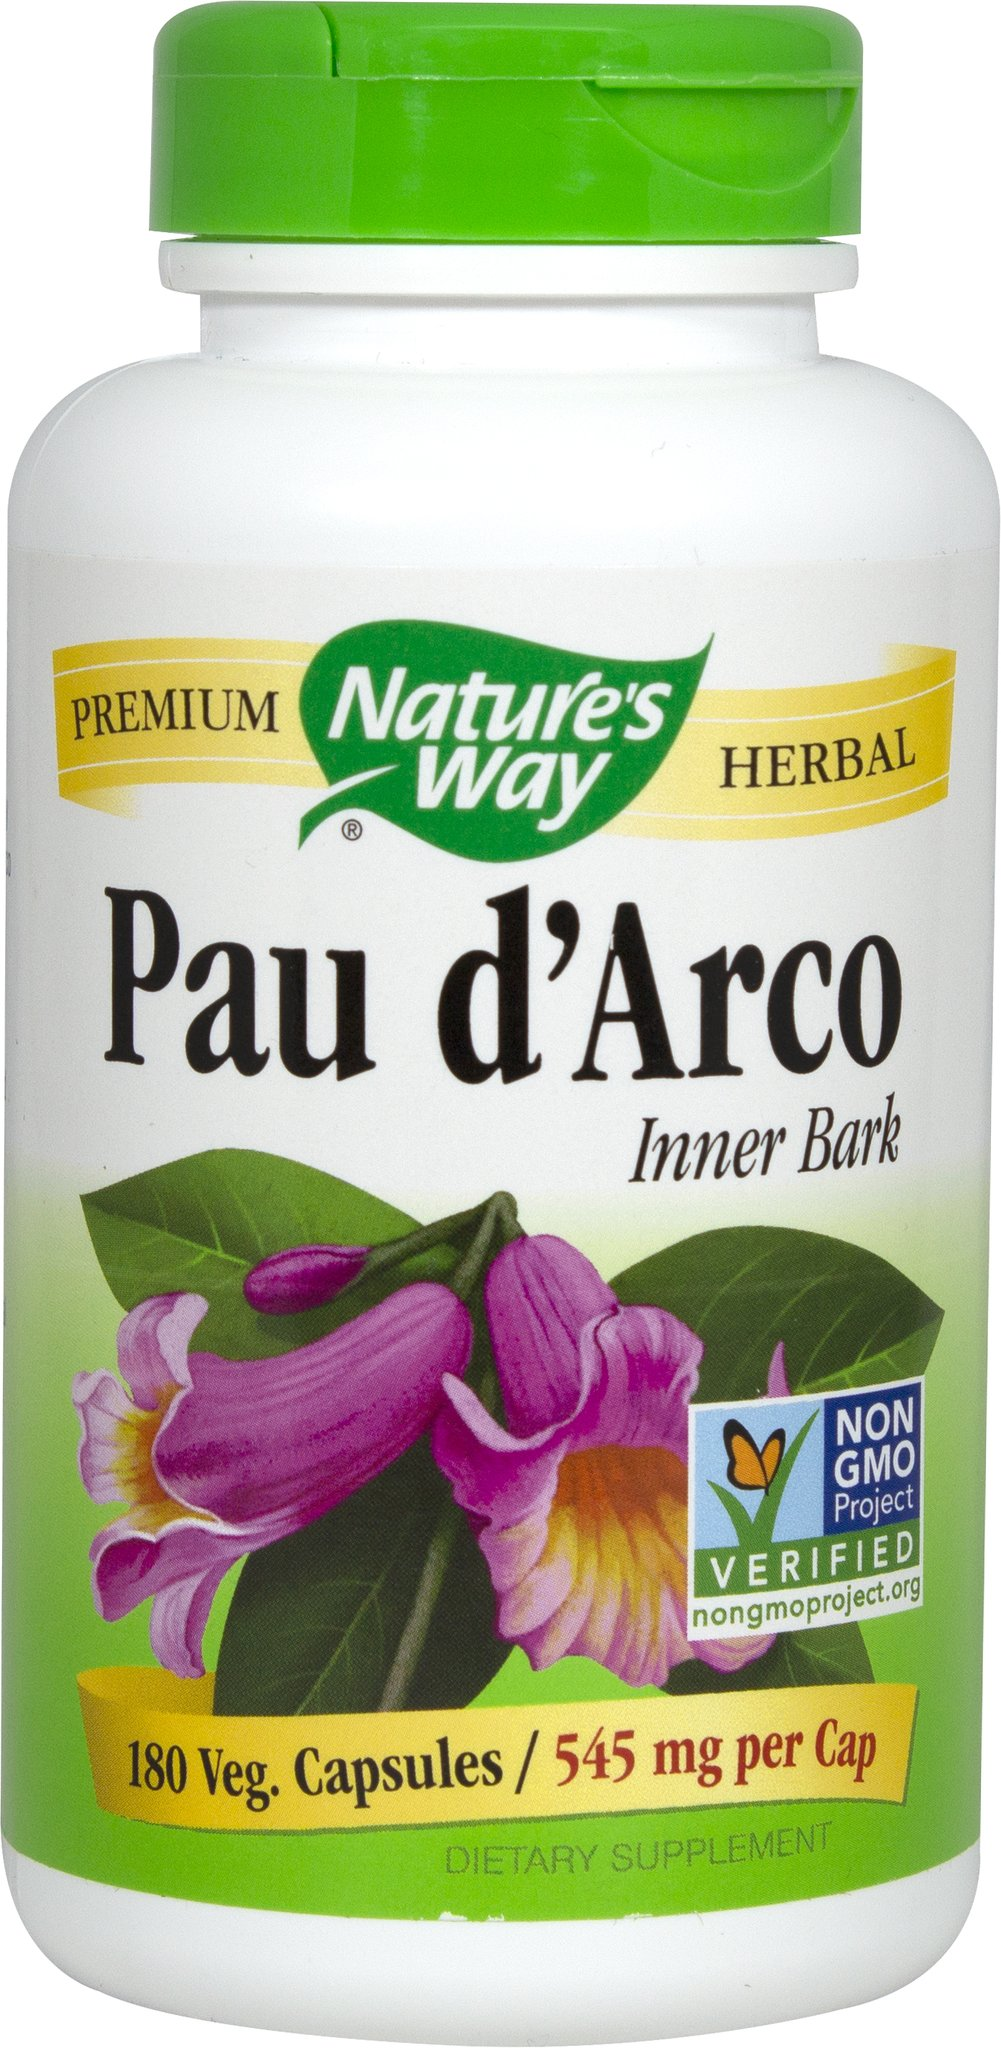 Pau d'Arco 545 mg Thumbnail Alternate Bottle View